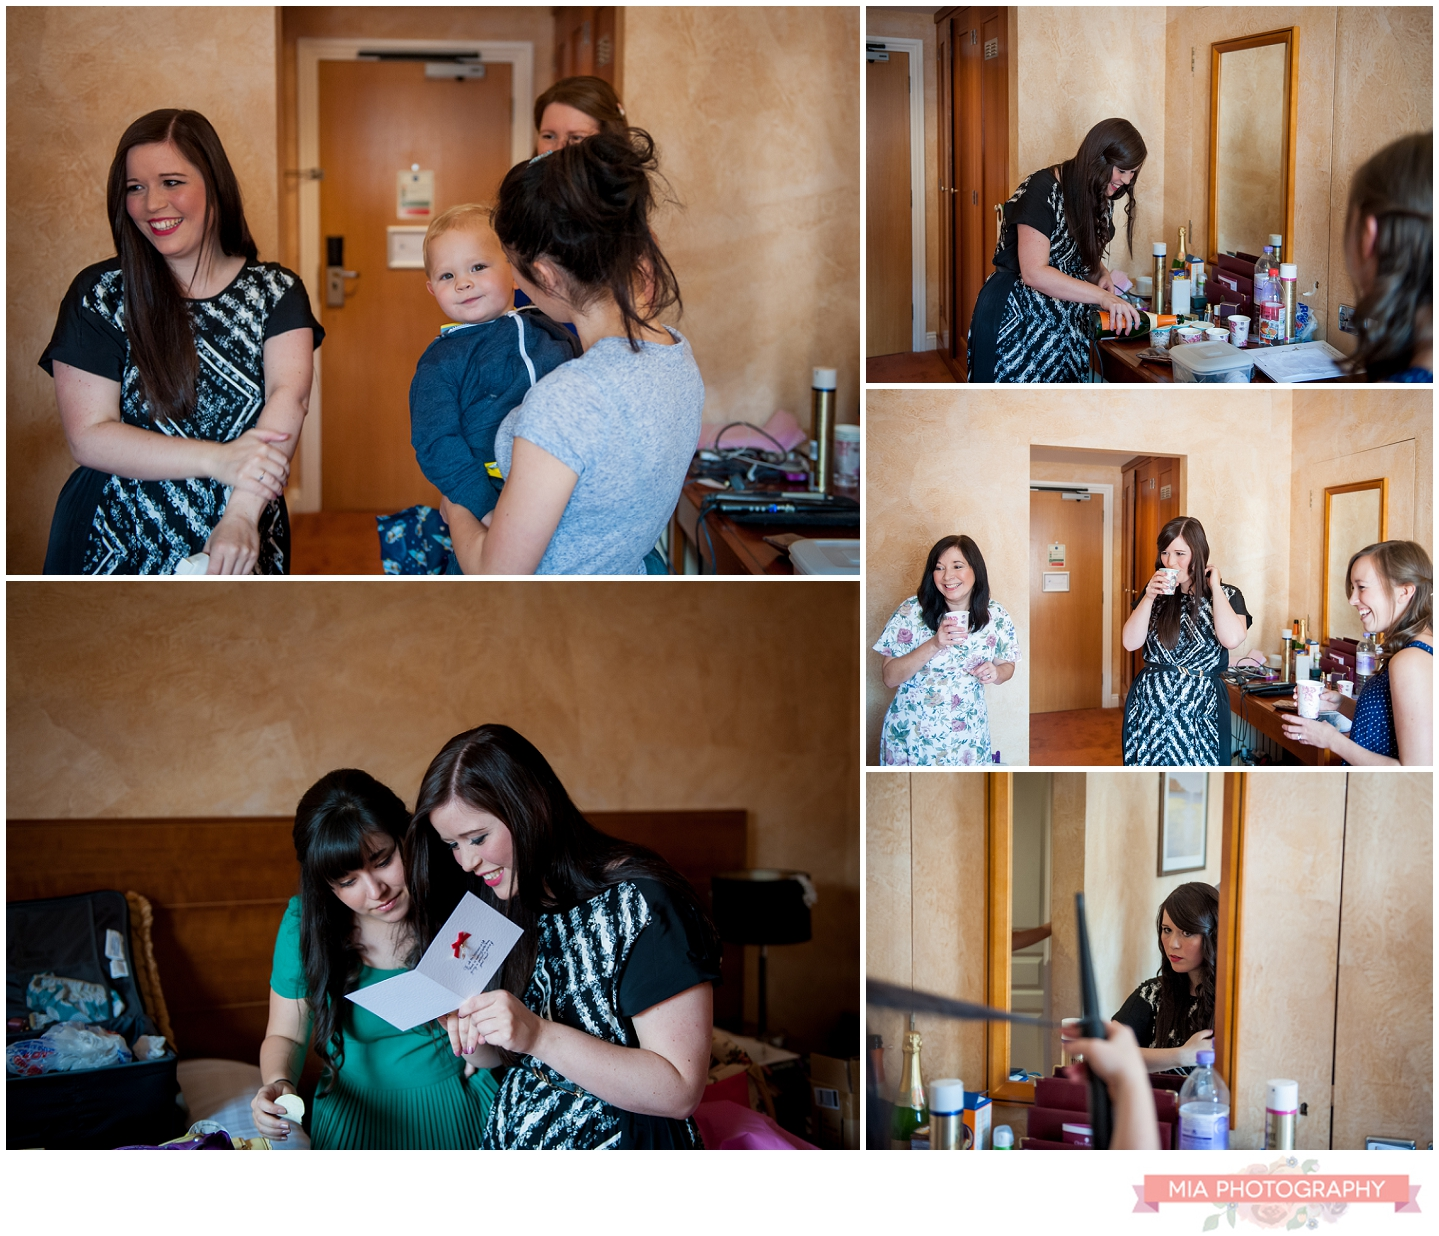 wedding photography at Old Thorns Manor Hotel